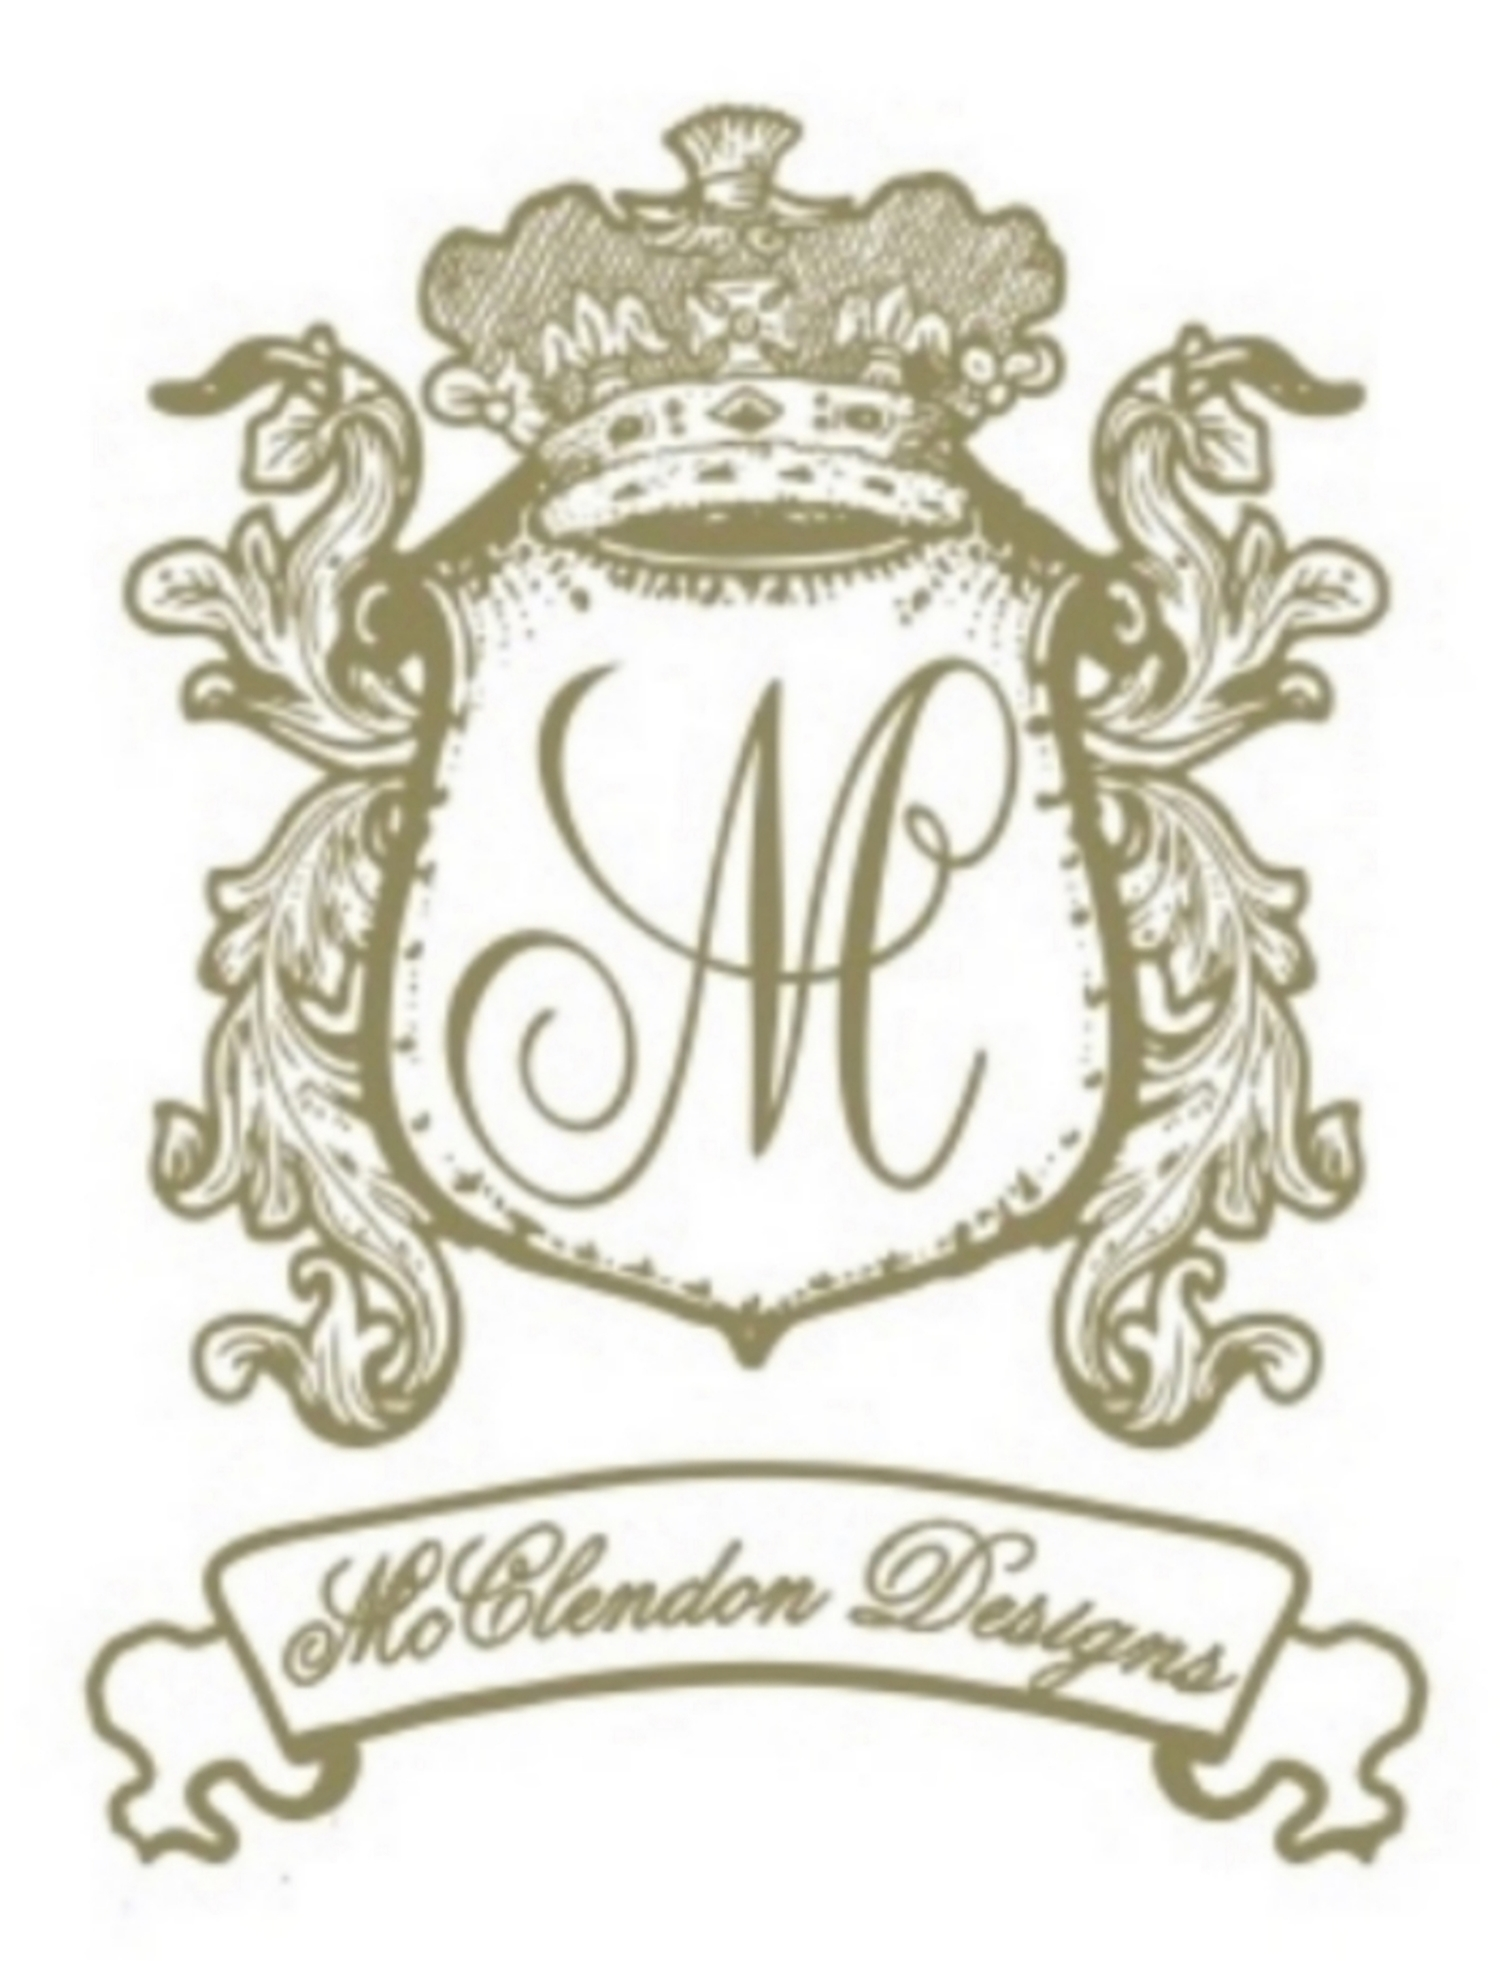 McClendon Designs